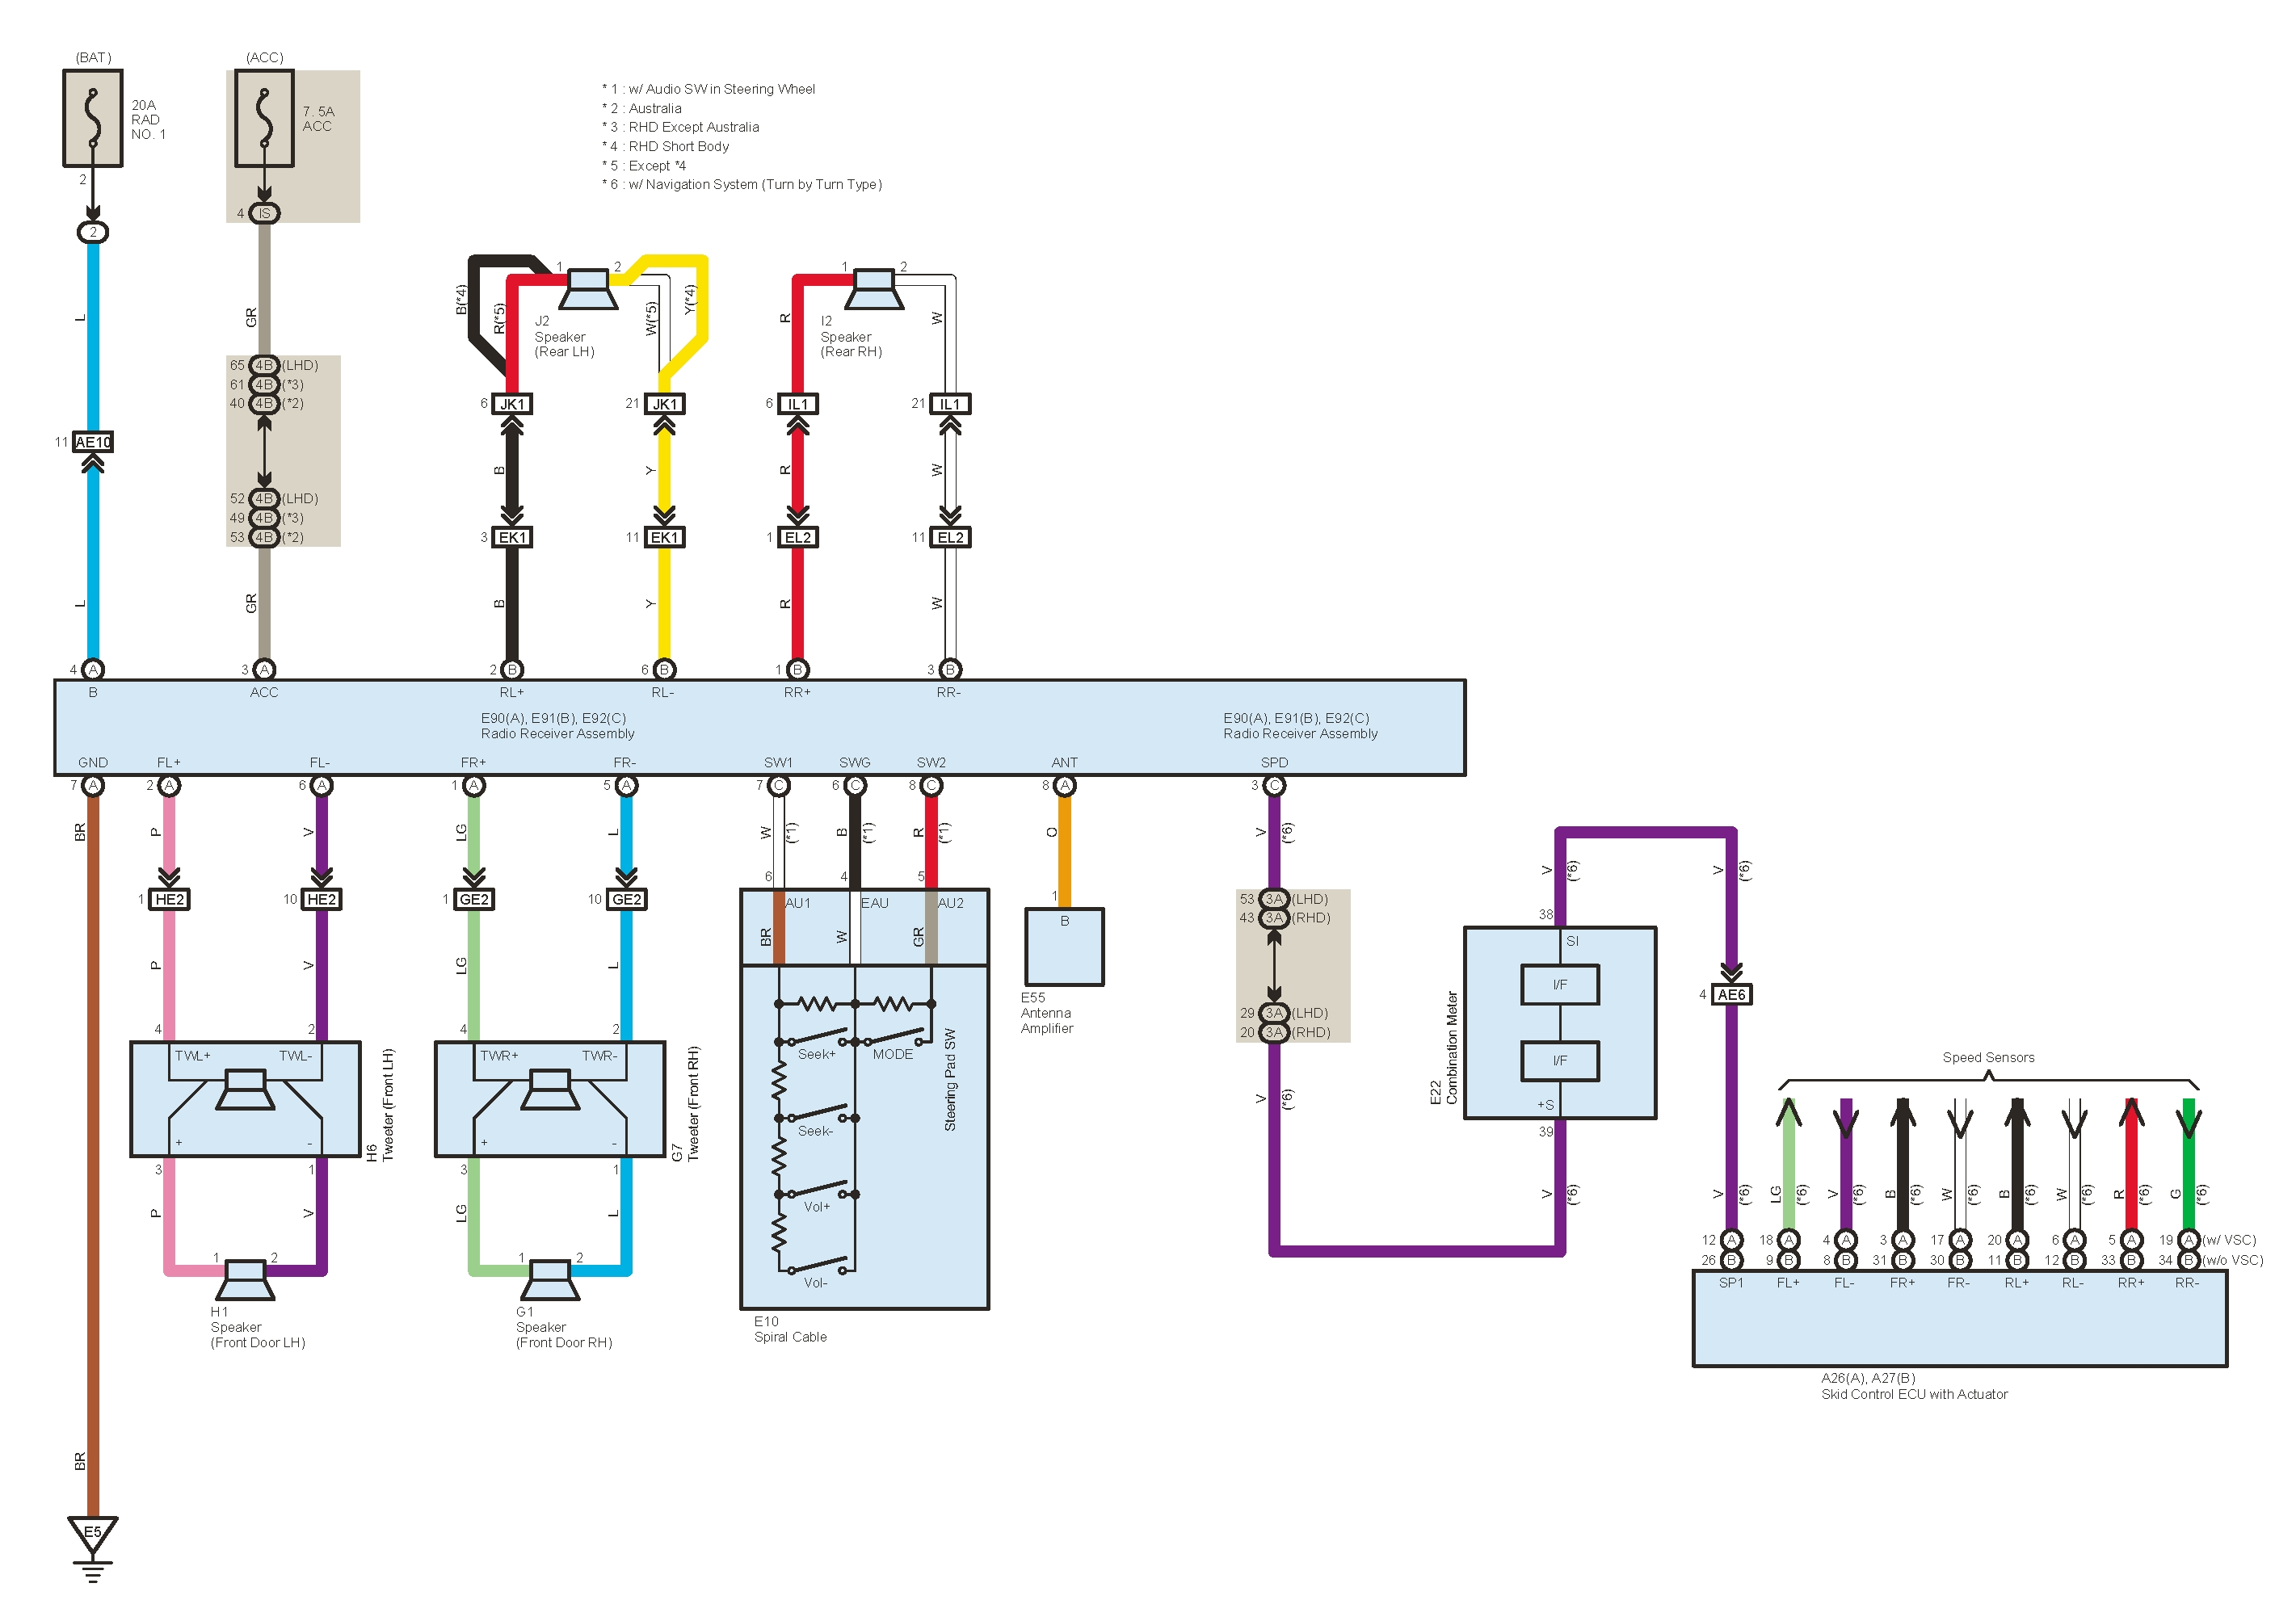 2004 Isuzu Rodeo Radio Wiring Diagram - Wiring Diagram and ...